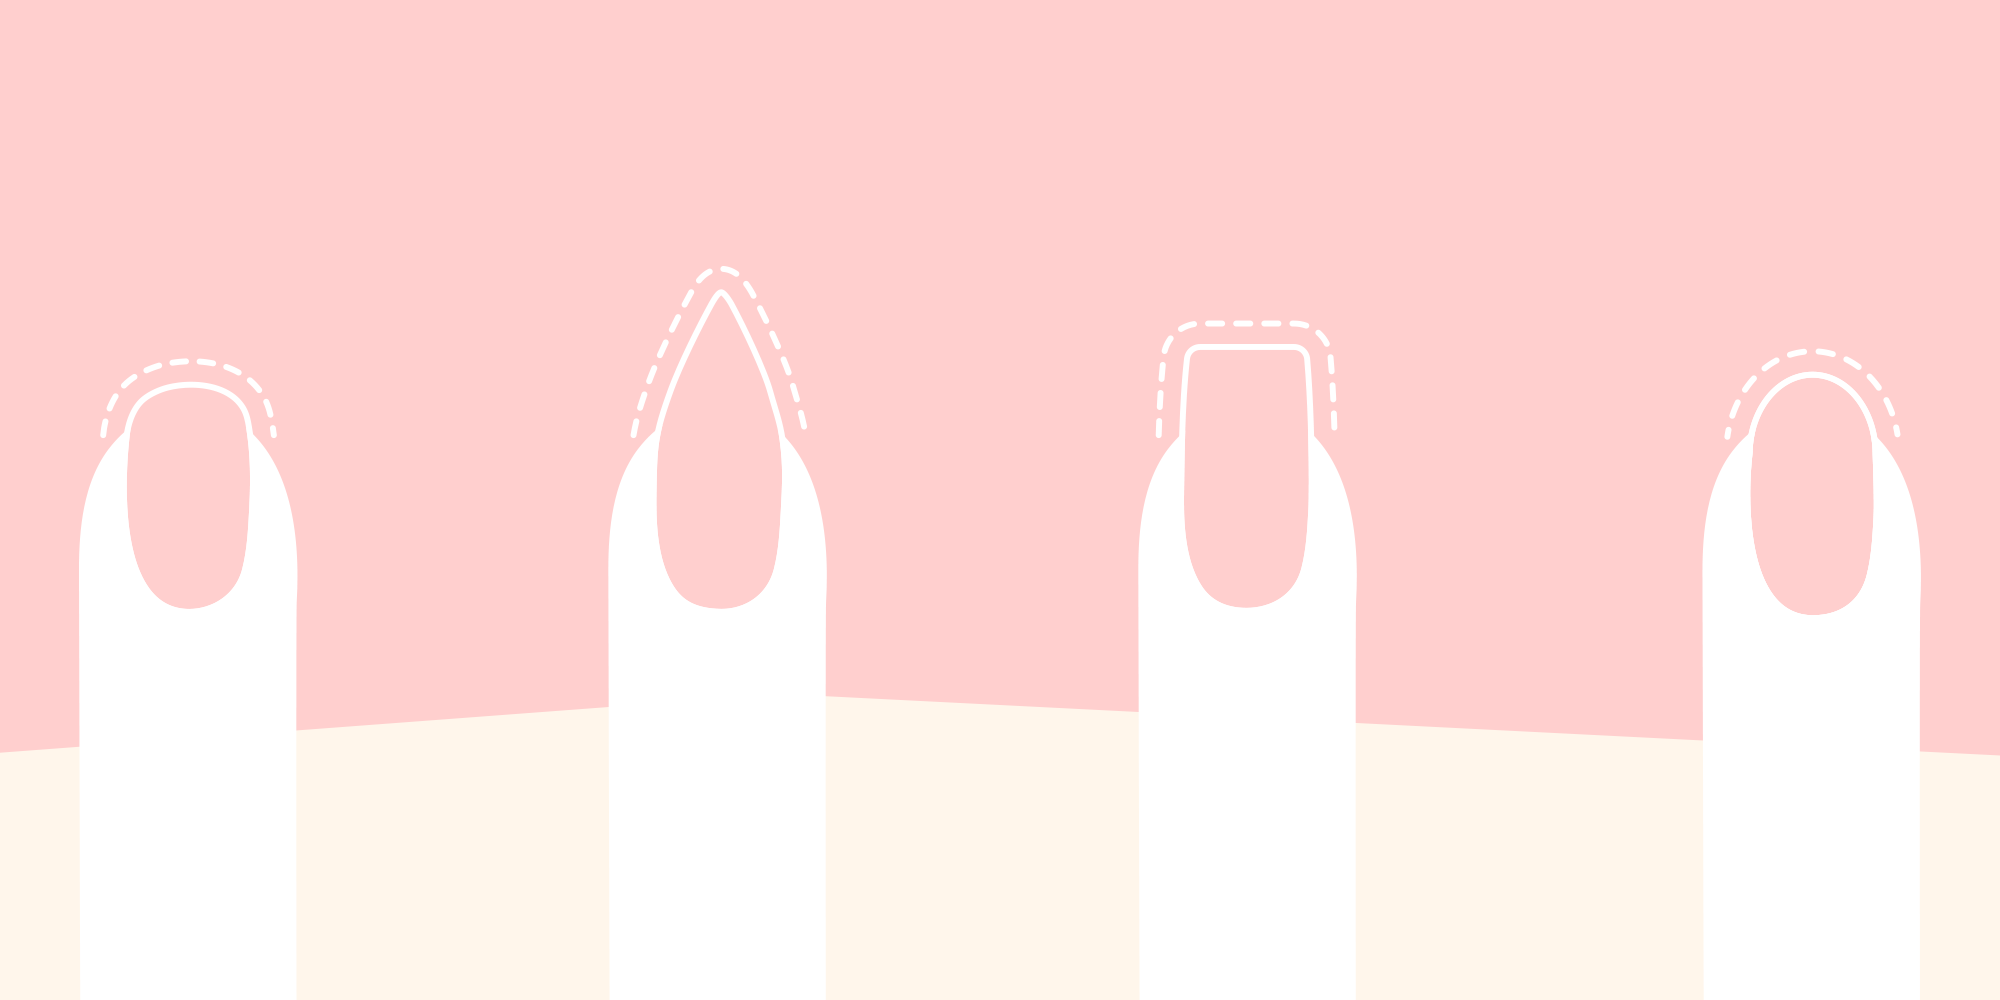 9 Different Nail Shapes and Names for Your Manicure - Types